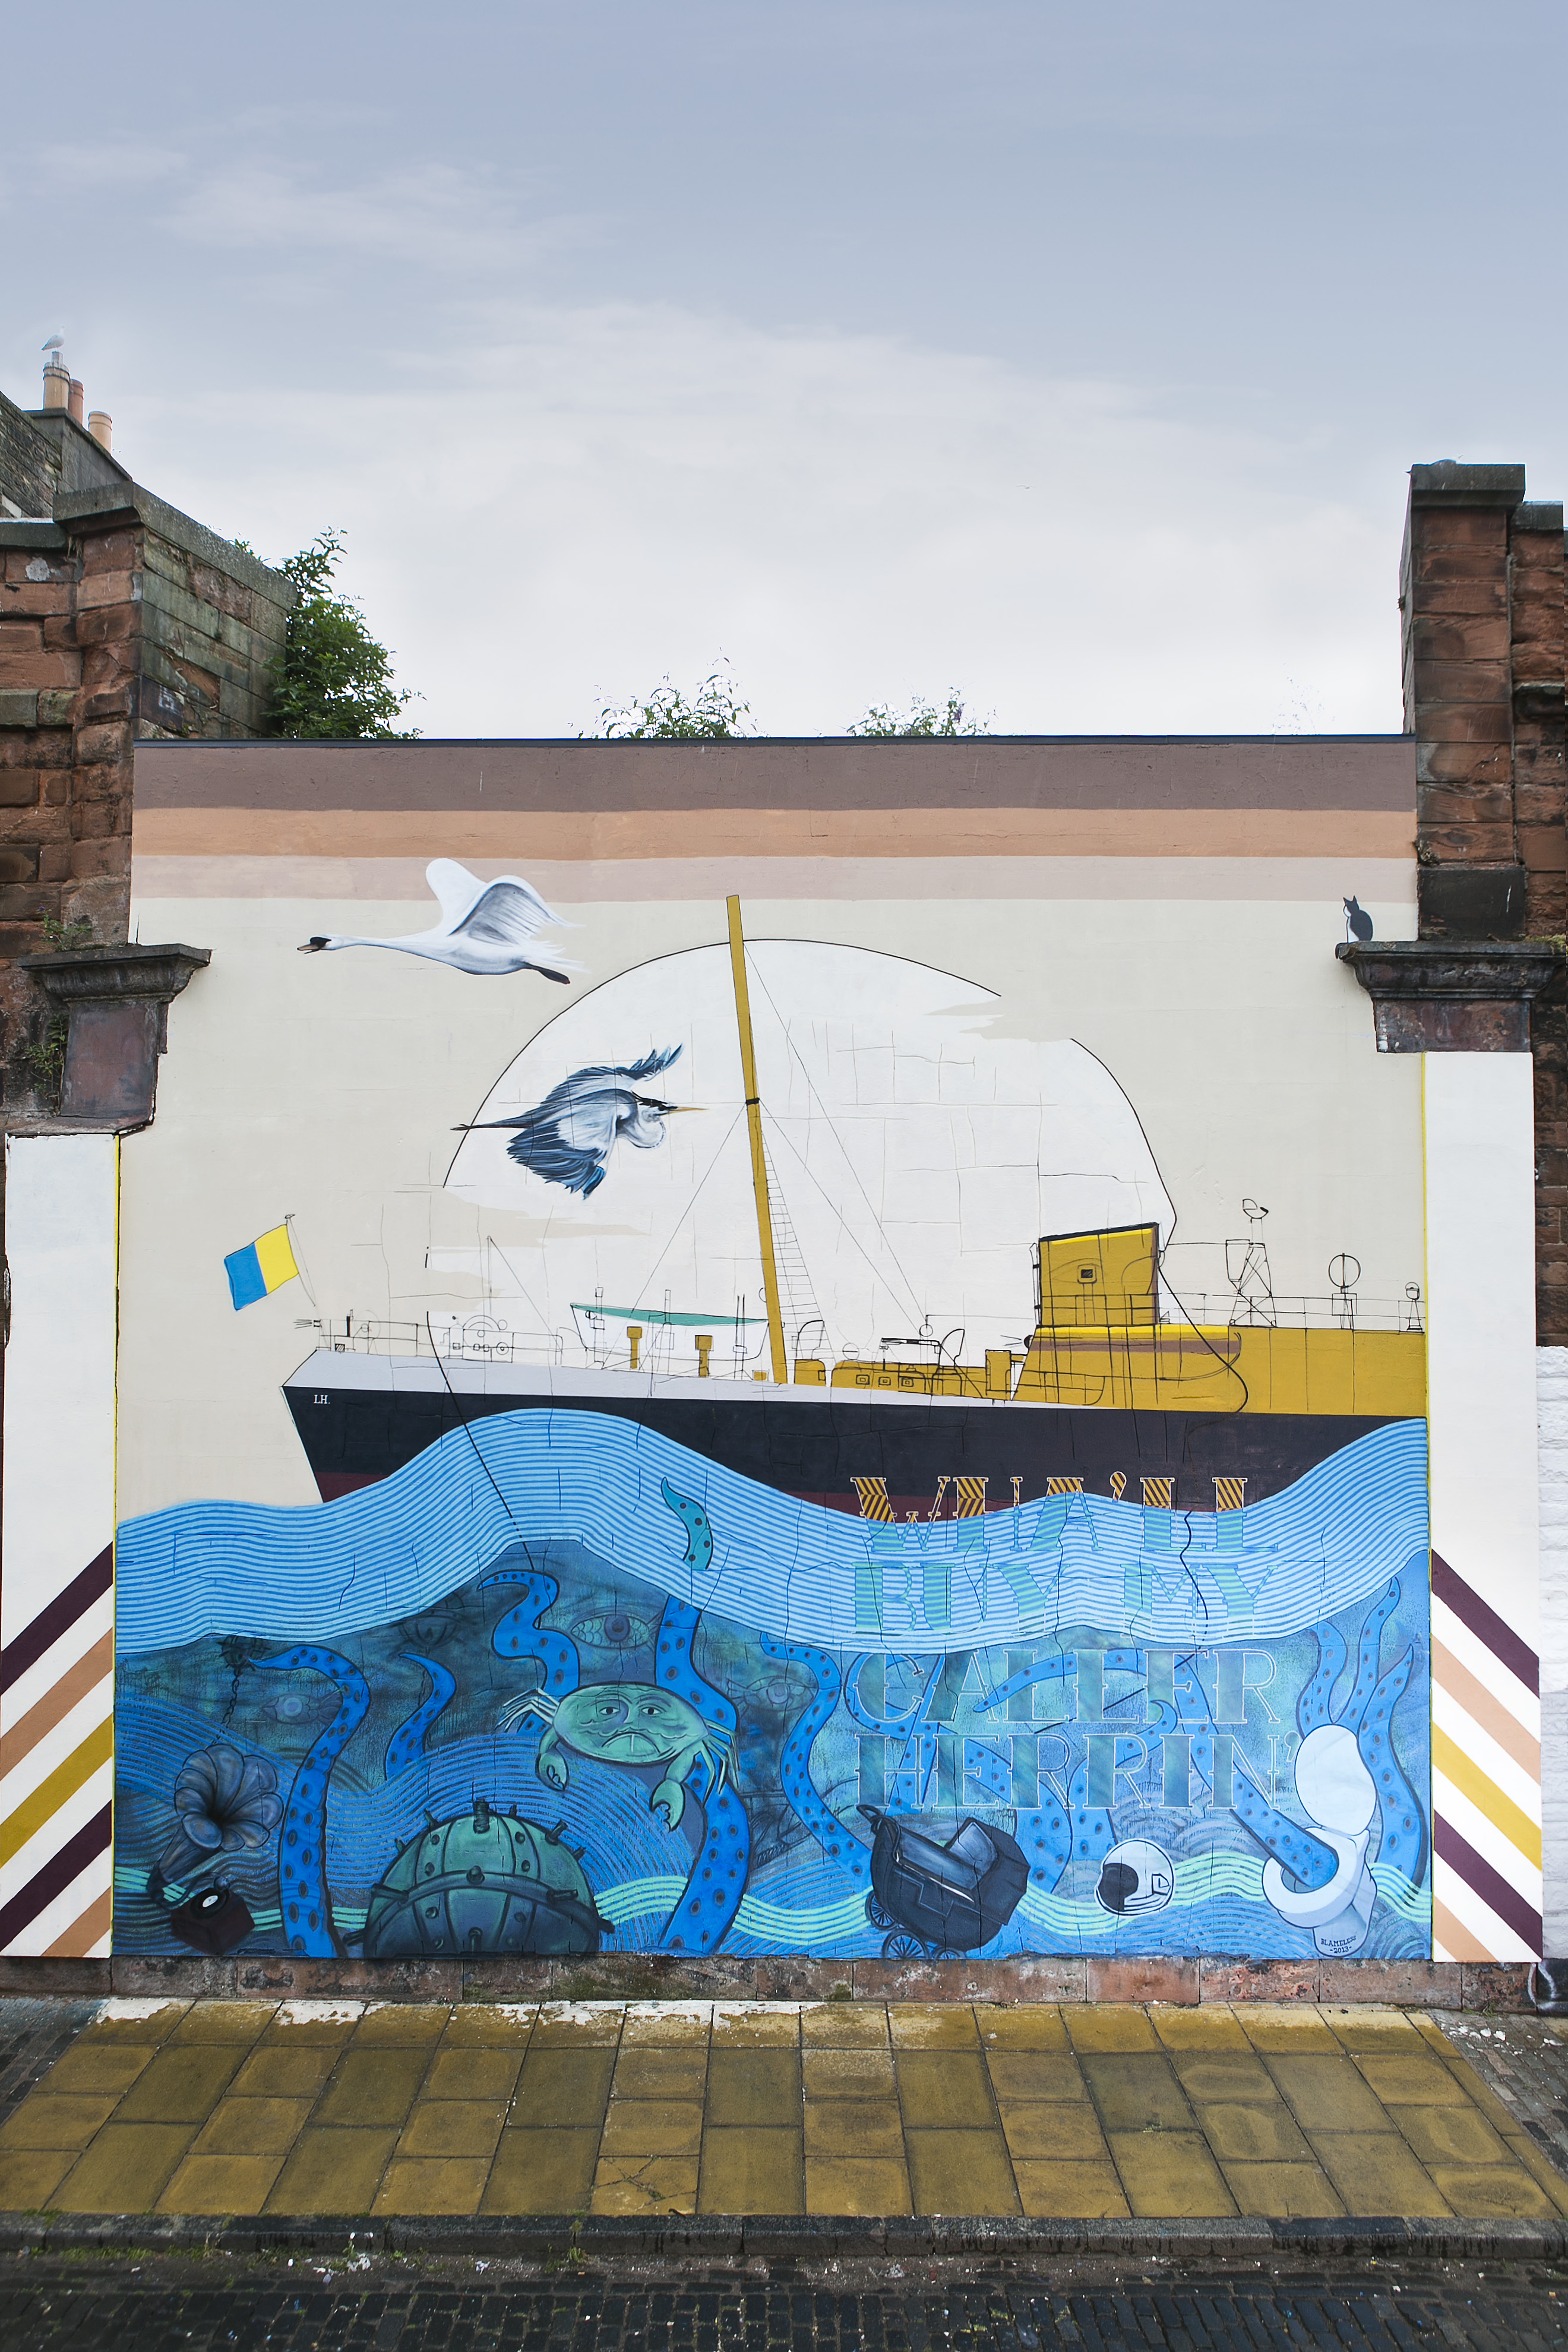 This mural shows a boat on the sea with birds flying above